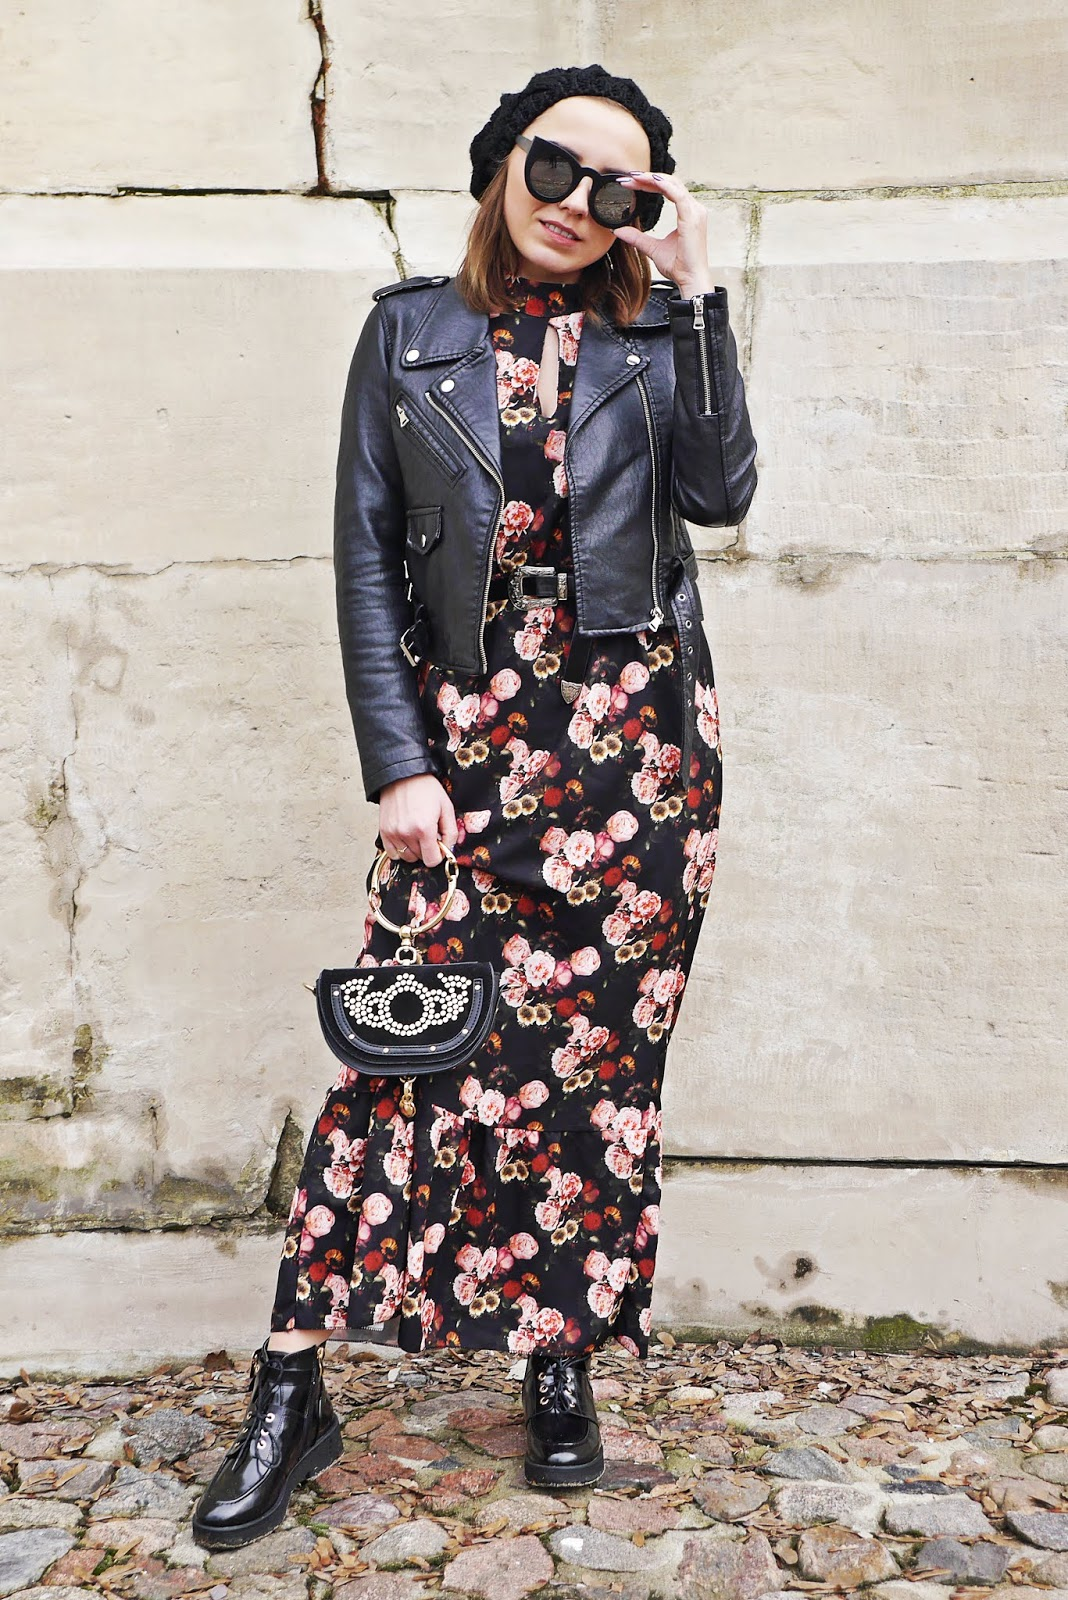 10_floral_print_dress_rock_boots_biker_jacket_outfit_look_karyn_fashion_blogger_280219